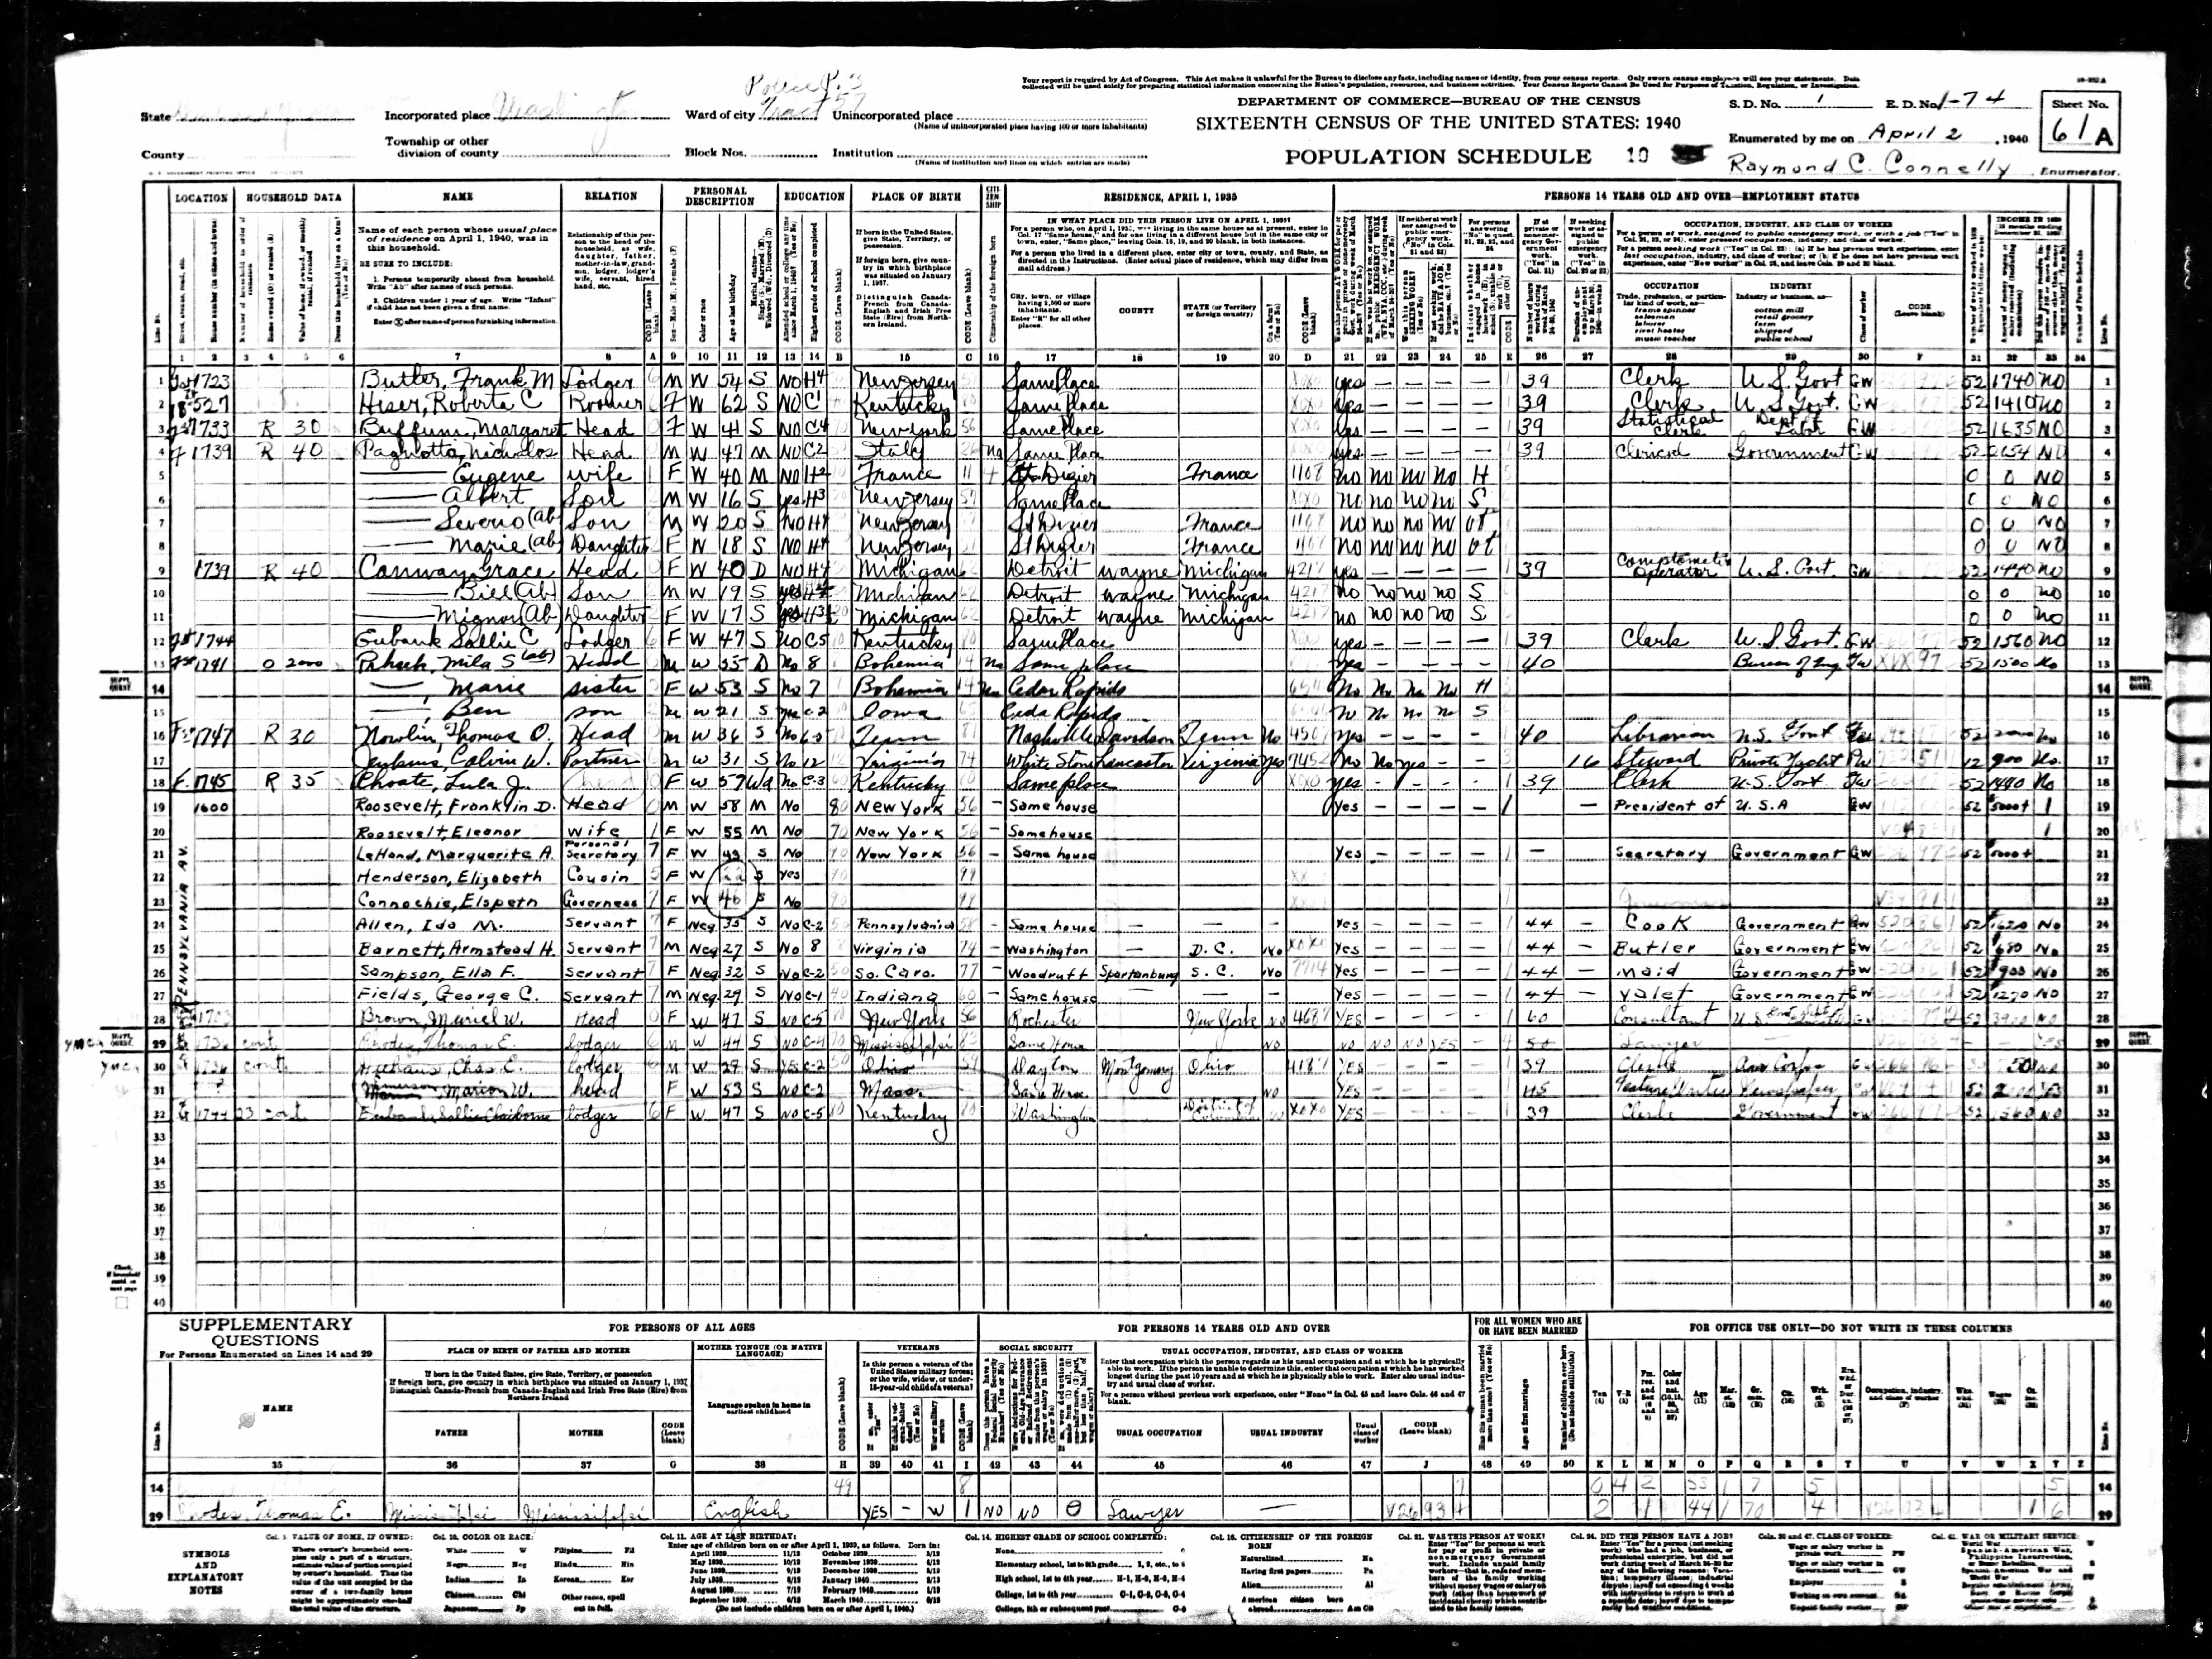 U.S. Federal Census - HeritageQuest Online - LibGuides at ProQuest